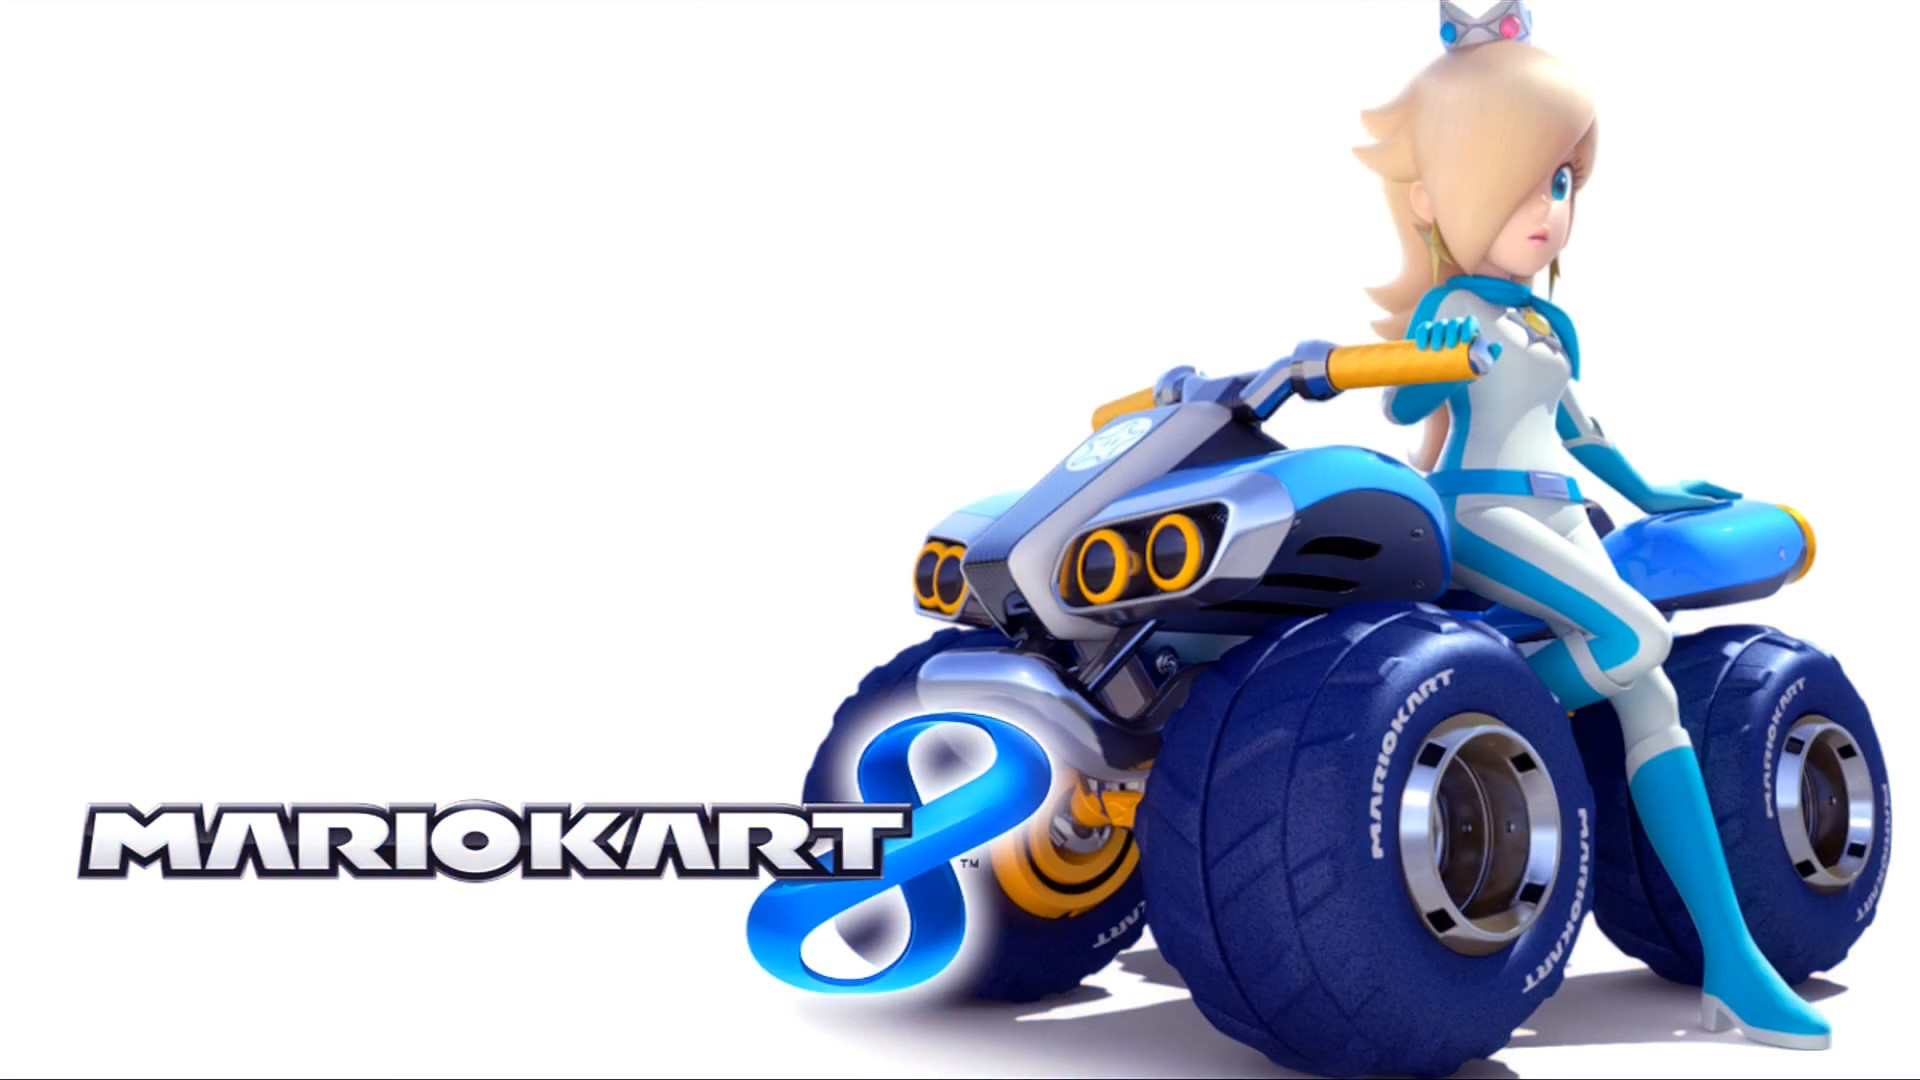 1920x1080 Image - Mario Kart 8 Title Screen (Rosalina).png | Mario Kart Racing Wiki |  FANDOM powered by Wikia